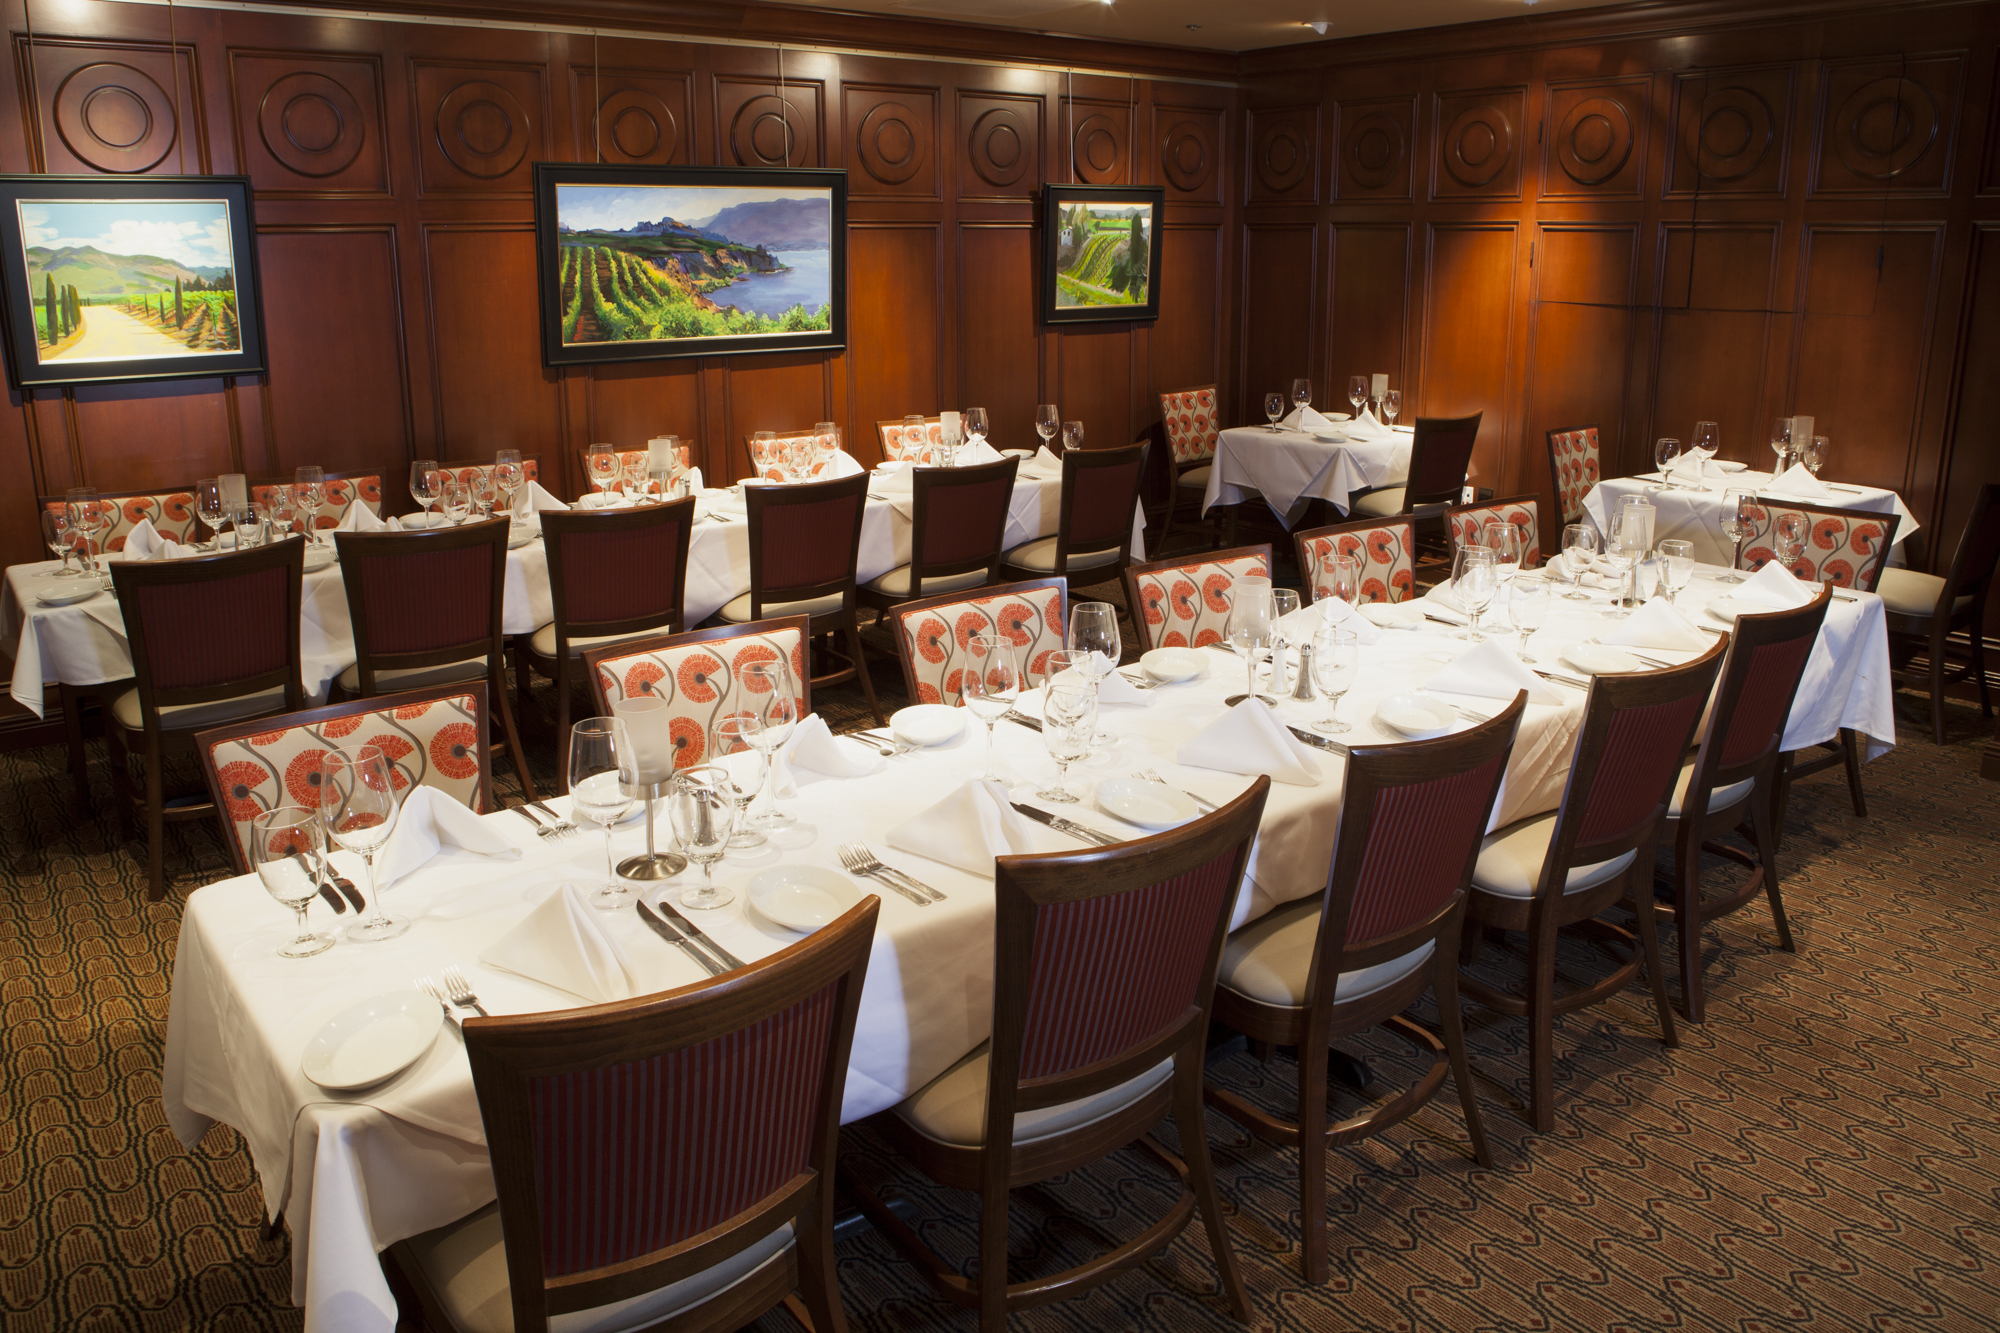 Sacramento Room event space at Ruth's Chris Steak House in San Francisco, SF Bay Area, San Fran